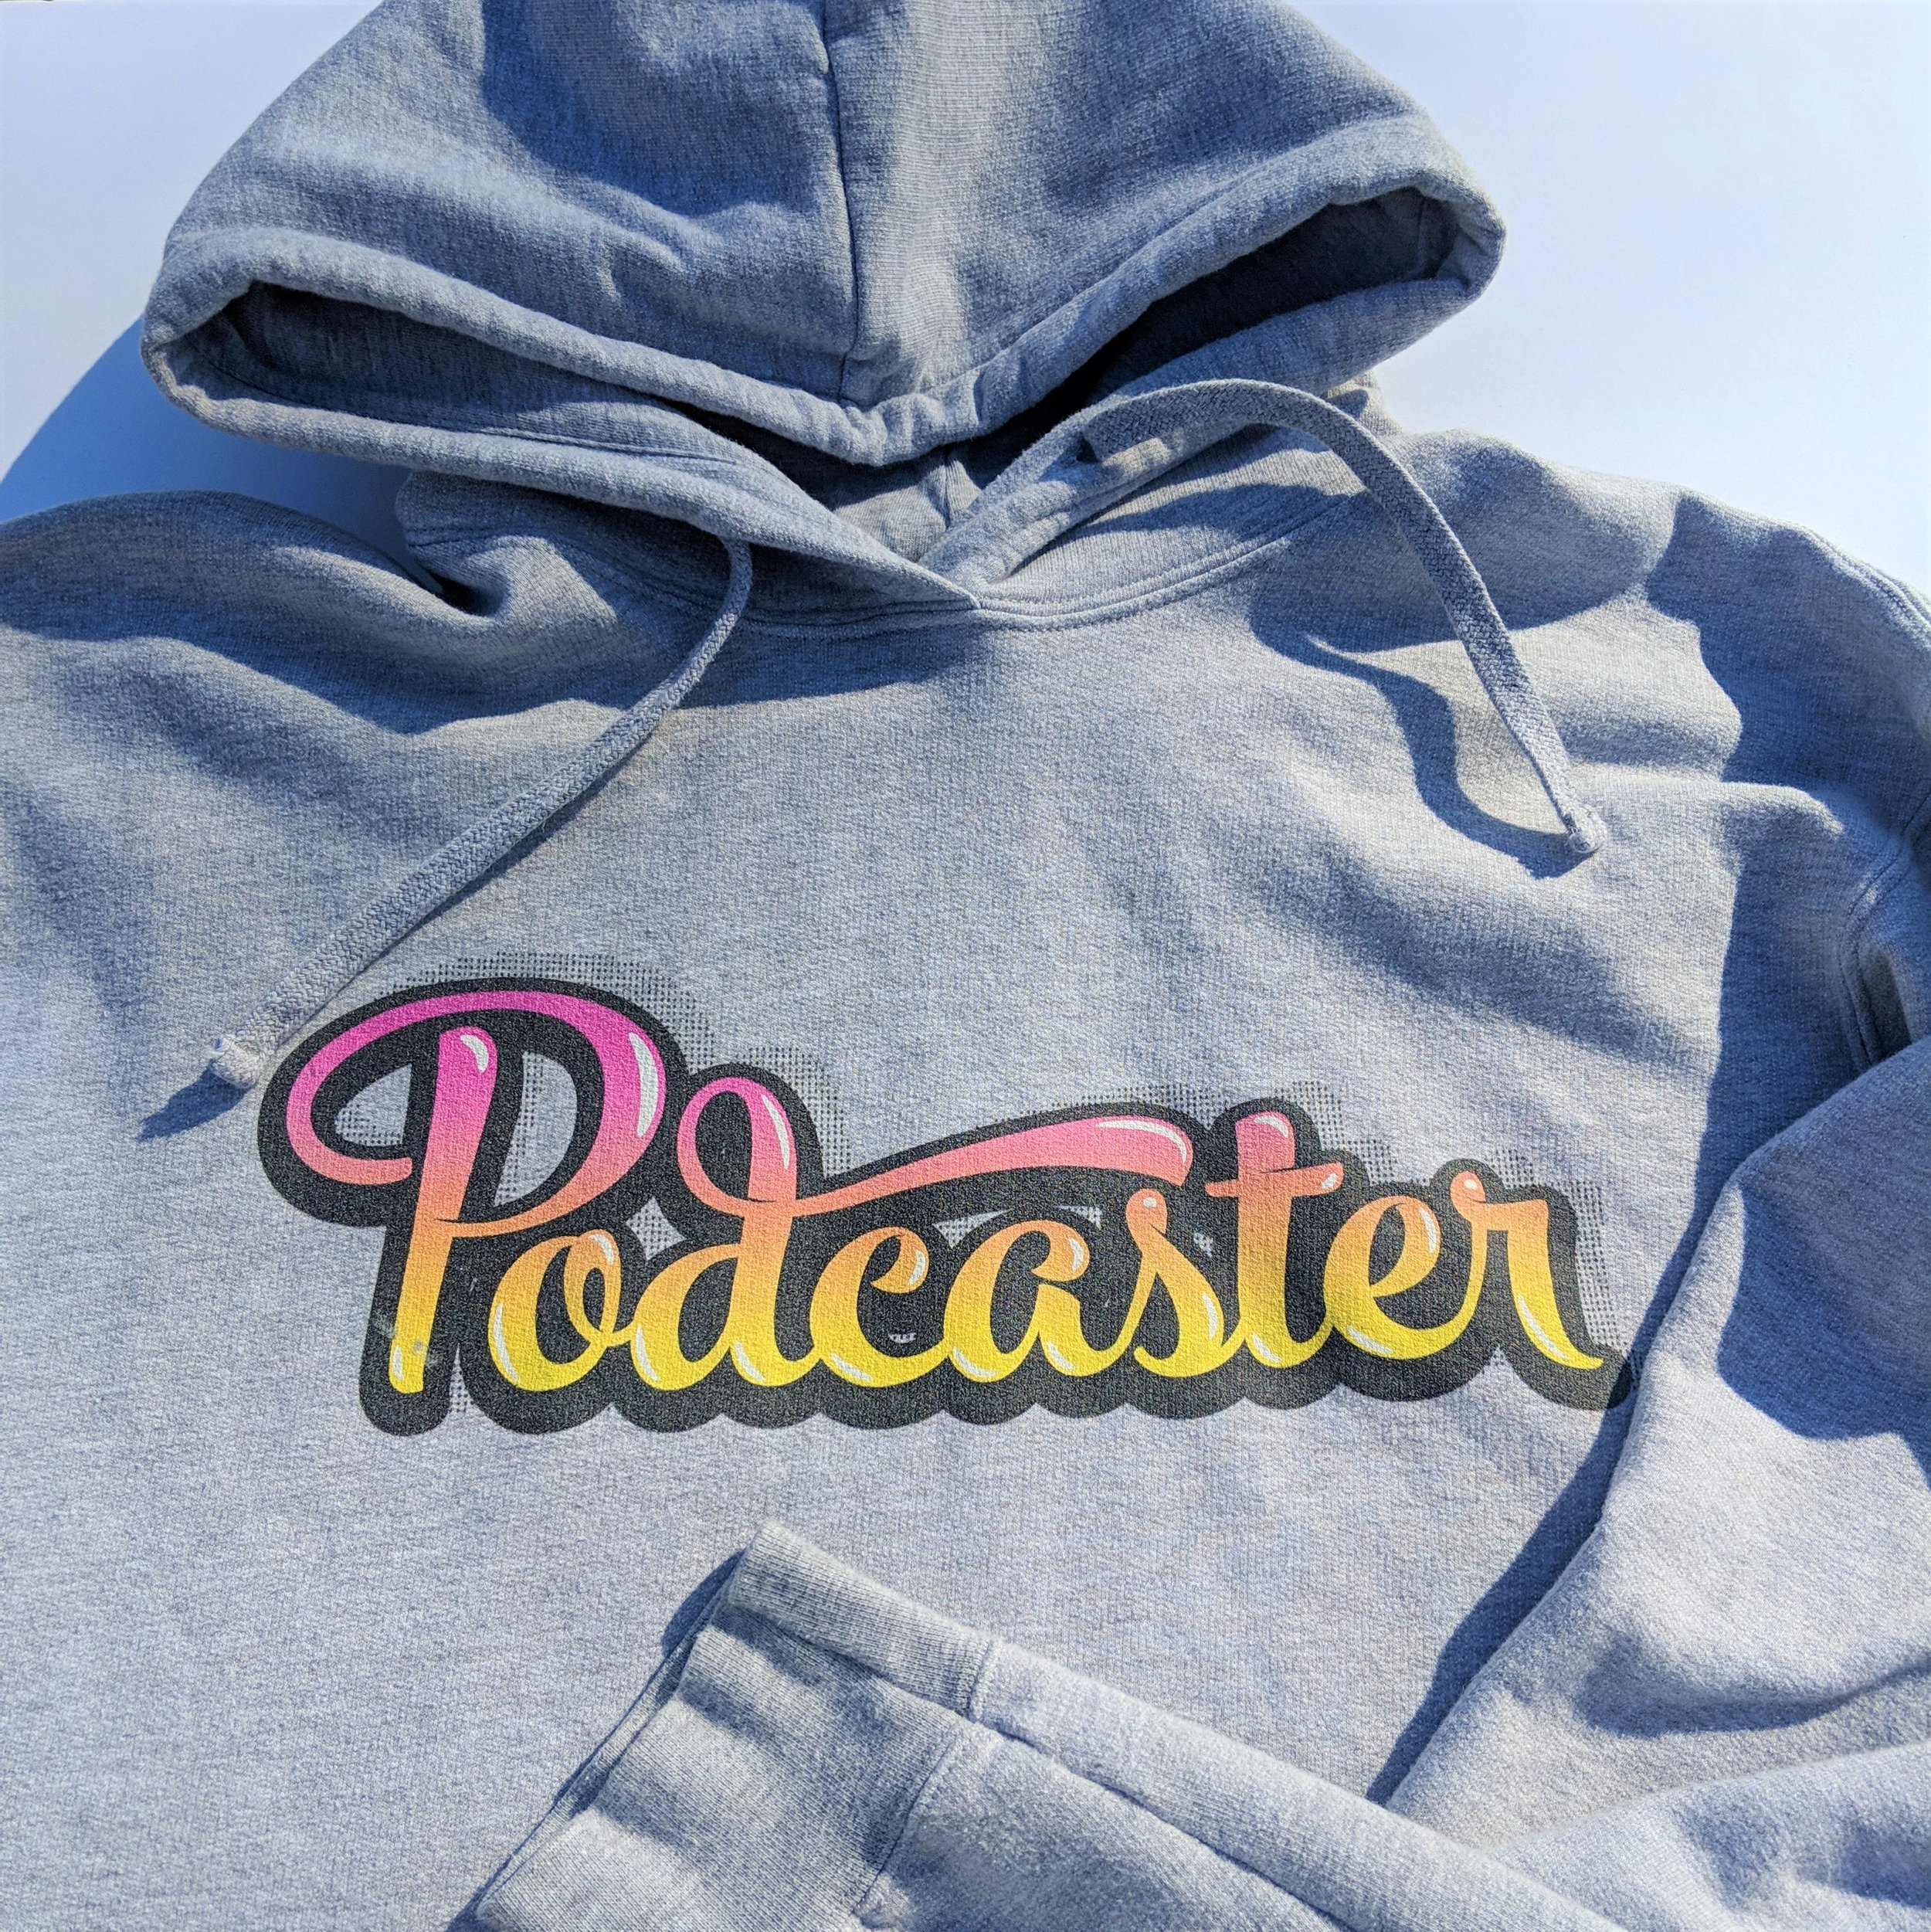 Podcaster-Sweatshirt-Podcast-Conferences.jpg